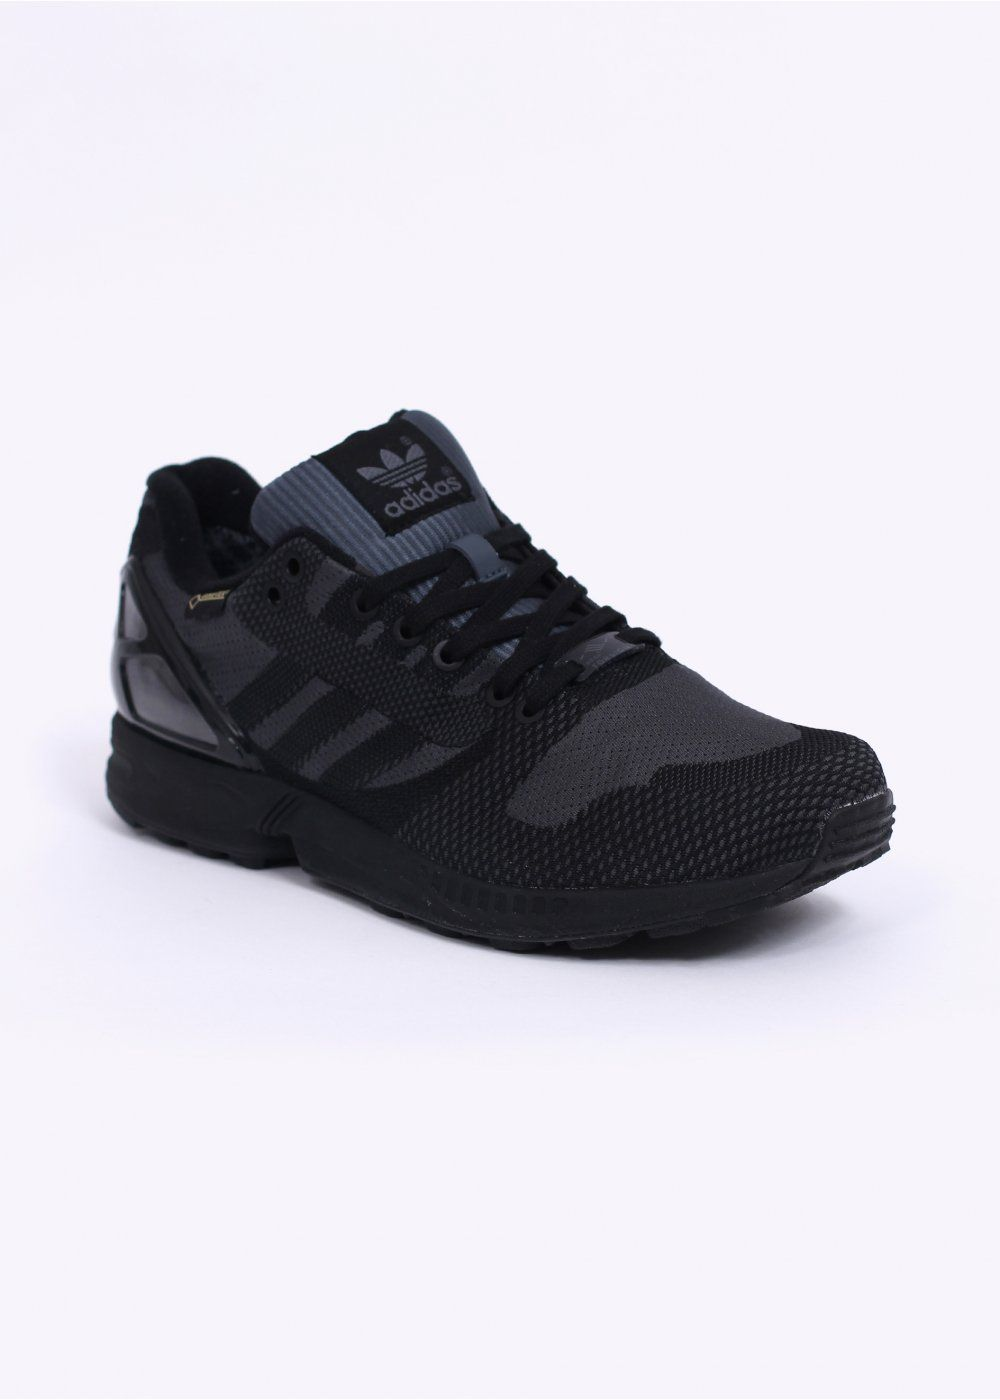 quality design 0da7d 53329 Adidas Originals Footwear ZX Flux Weave OG GTX Gore-Tex Trainers - Black    Black